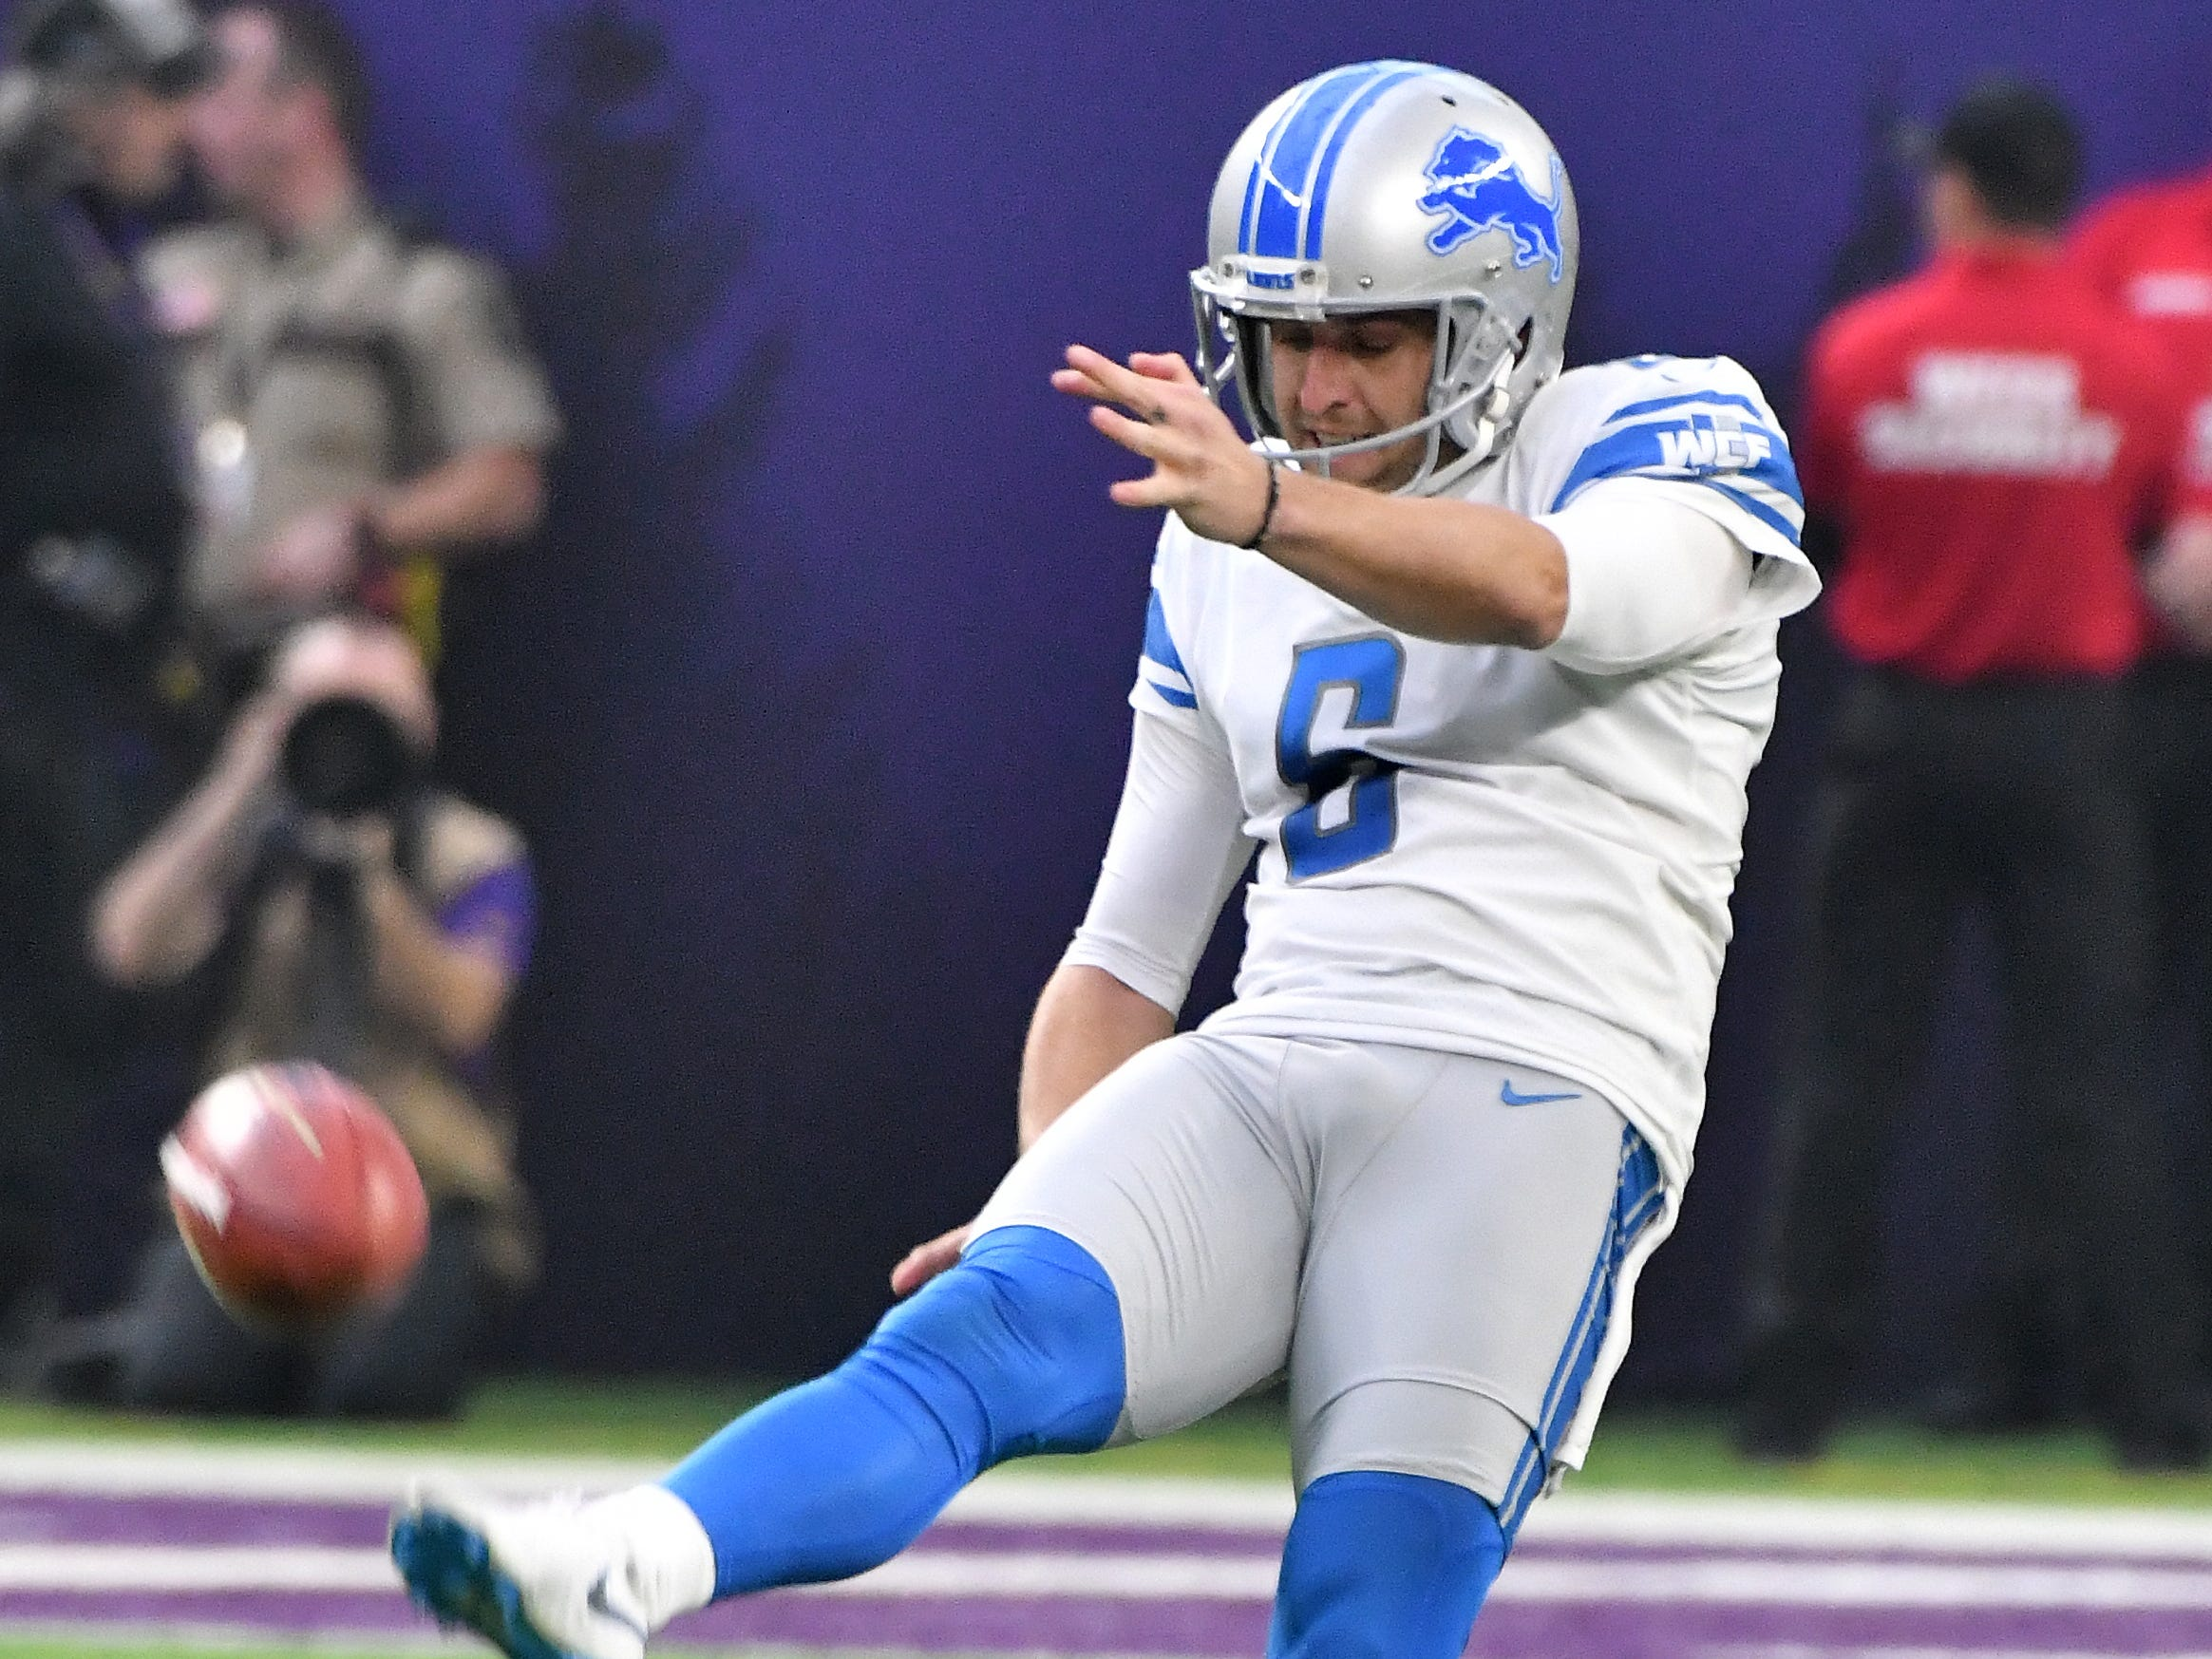 P Sam Martin: A good part of Martin's leg strength returned this season, after injury sapped his performance a year ago. Still, he's not at the level he was when he was breaking franchise records in 2016. This season's numbers are lower than they could have been because of field position and poor coverage units. Martin did finish near the top of the league in punts inside the 20 (32), with just four going into the end zone for touchbacks.  Grade: C+